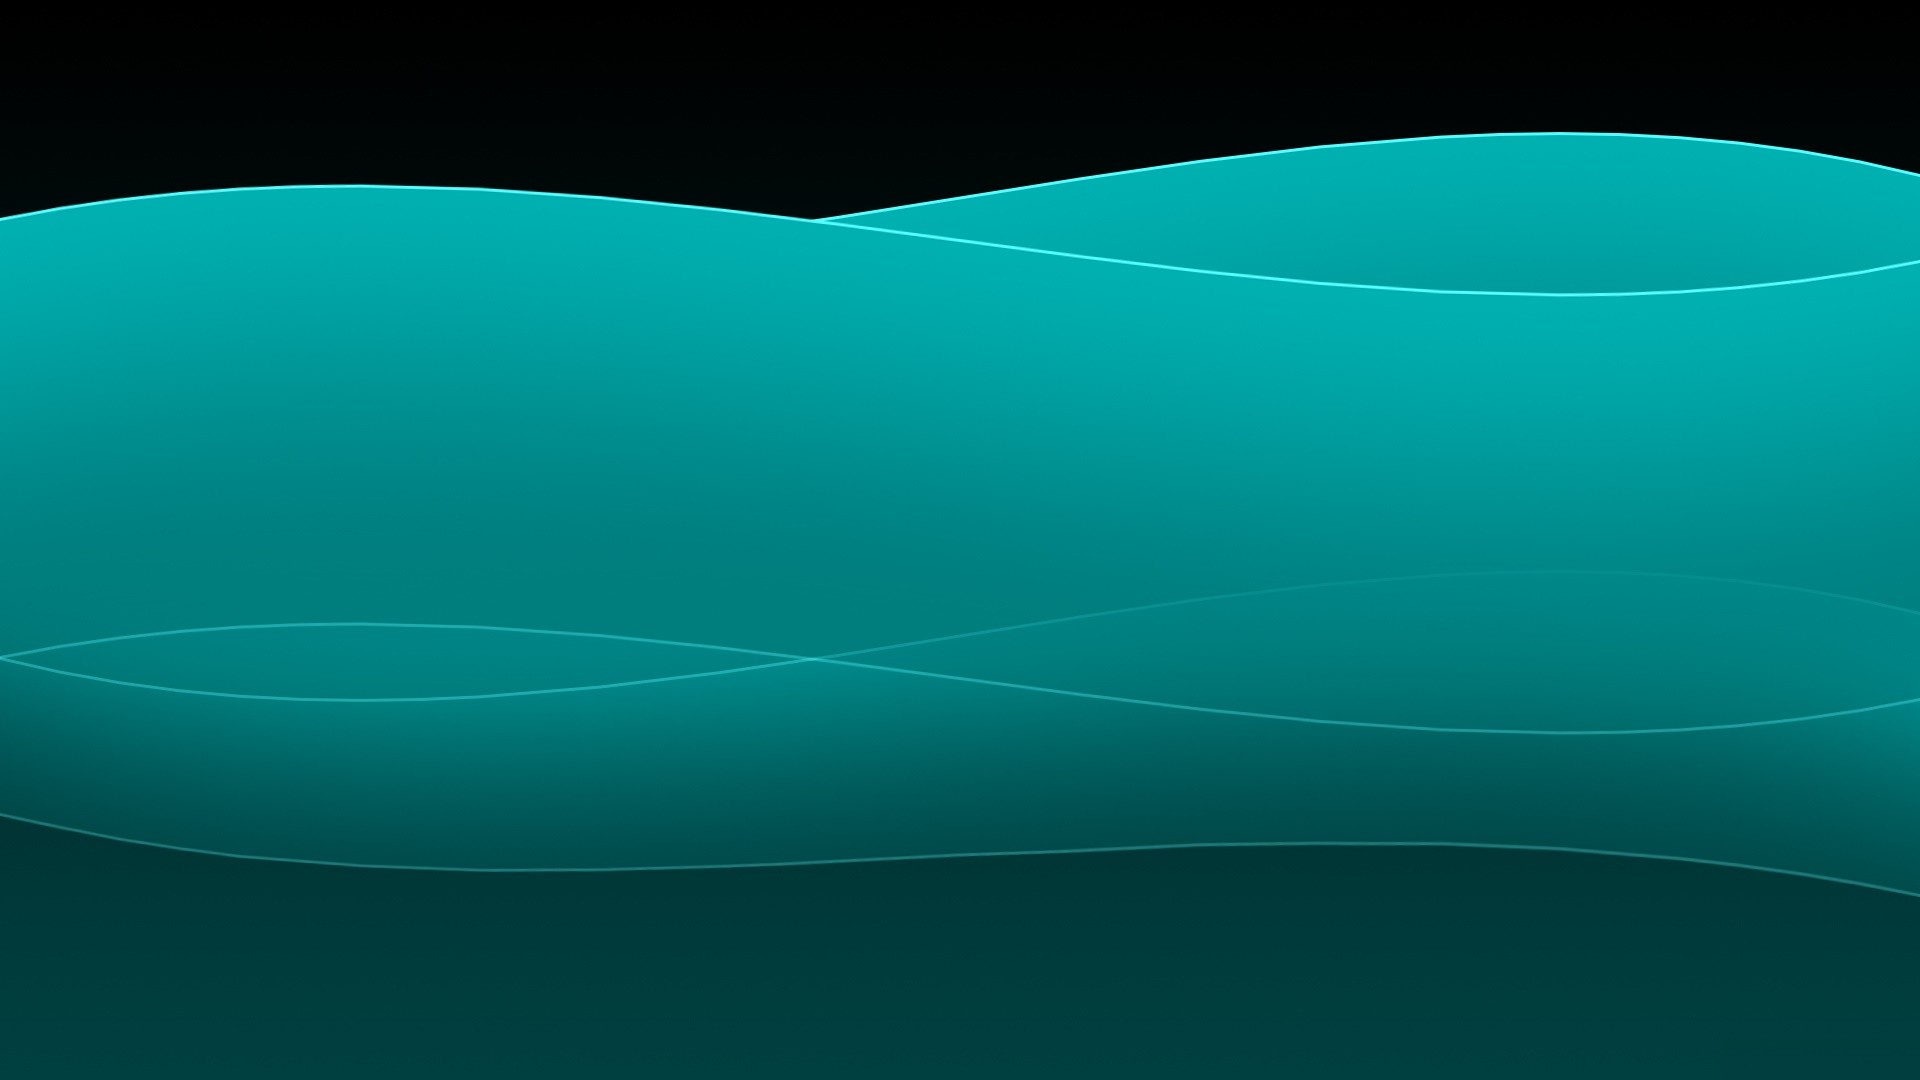 Teal And Black Wallpaper 55 Images